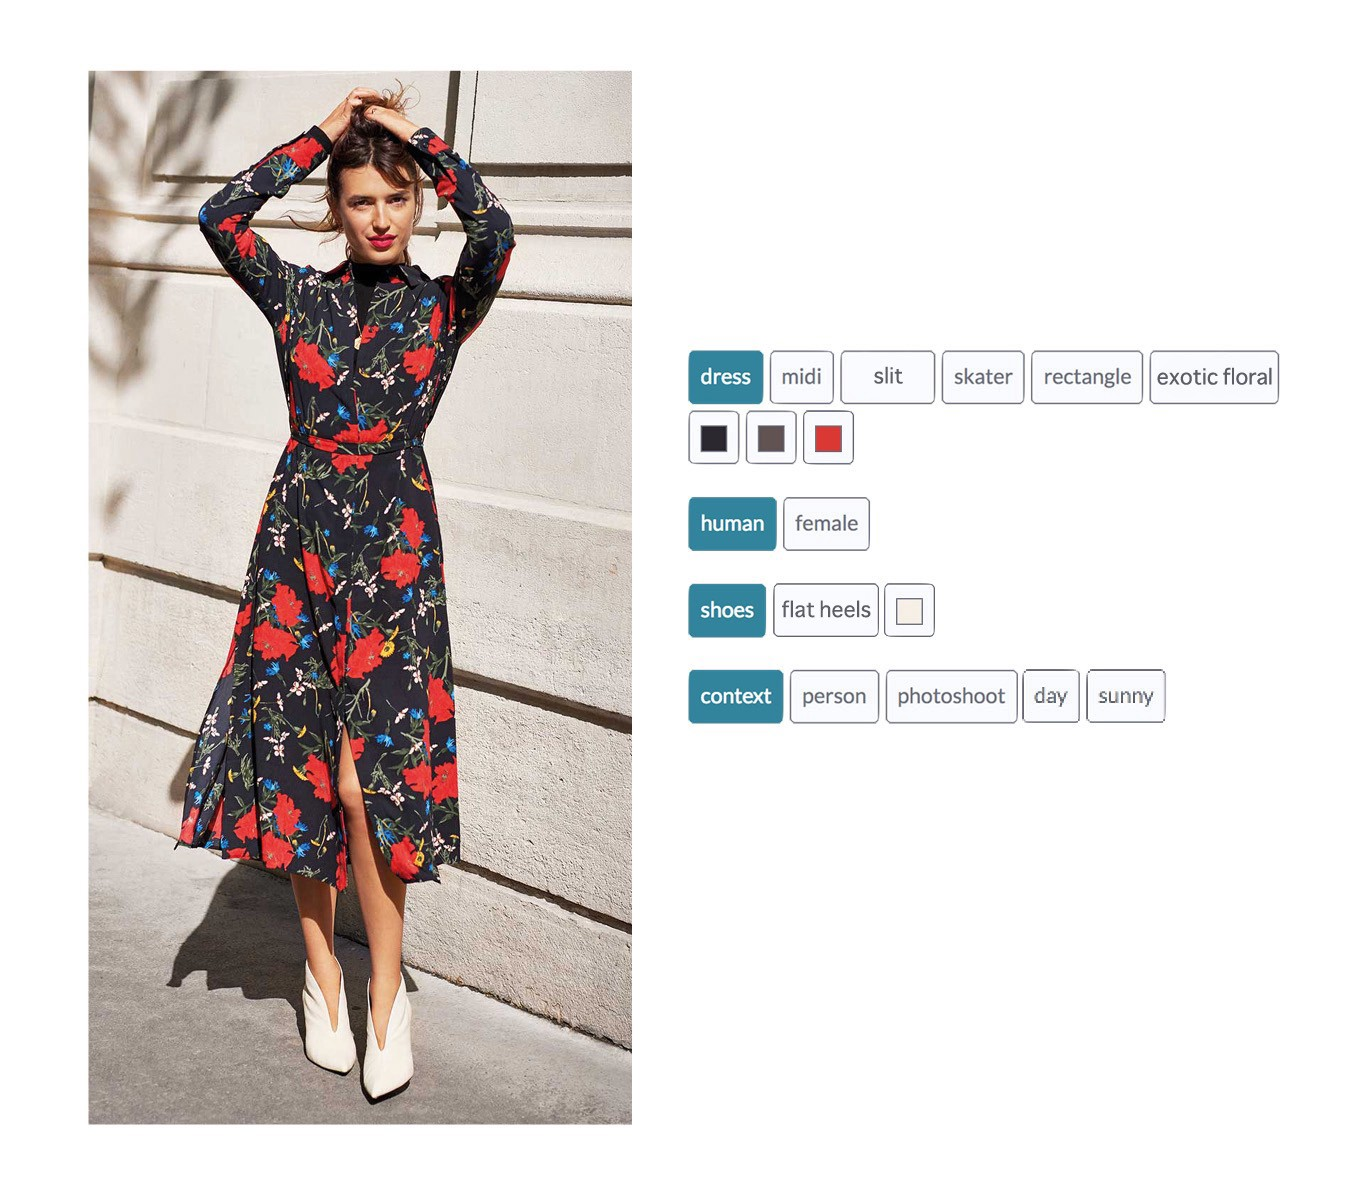 Jeanne Damas poses in a floral dress with Heuritech's visual recognition technology applied.